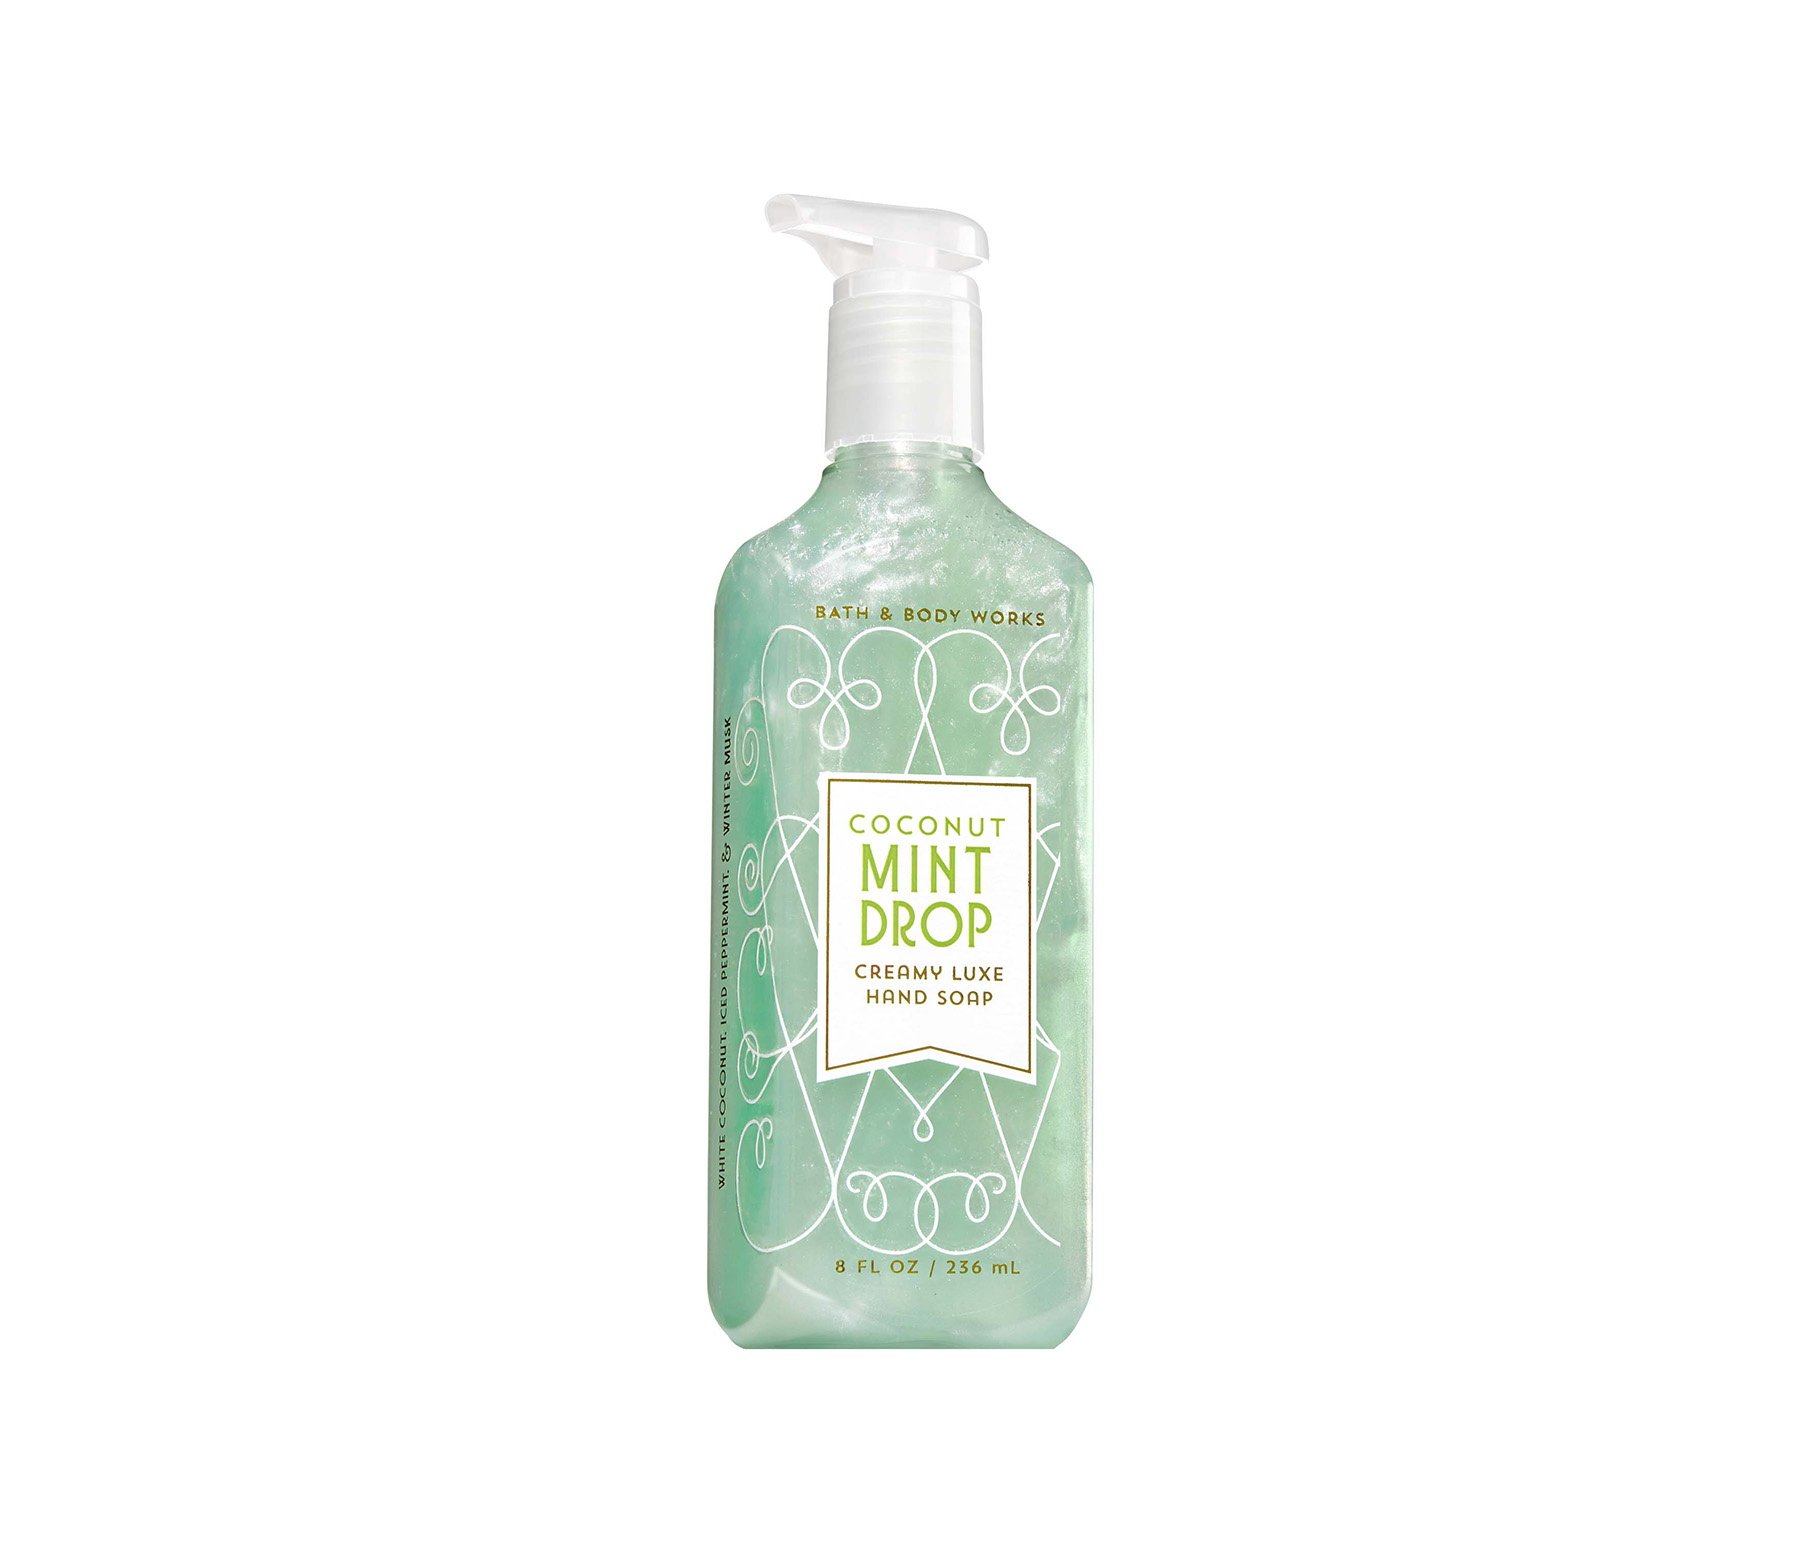 Bath & Body Works Coconut Mint Drop Creamy Luxe Hand Soap